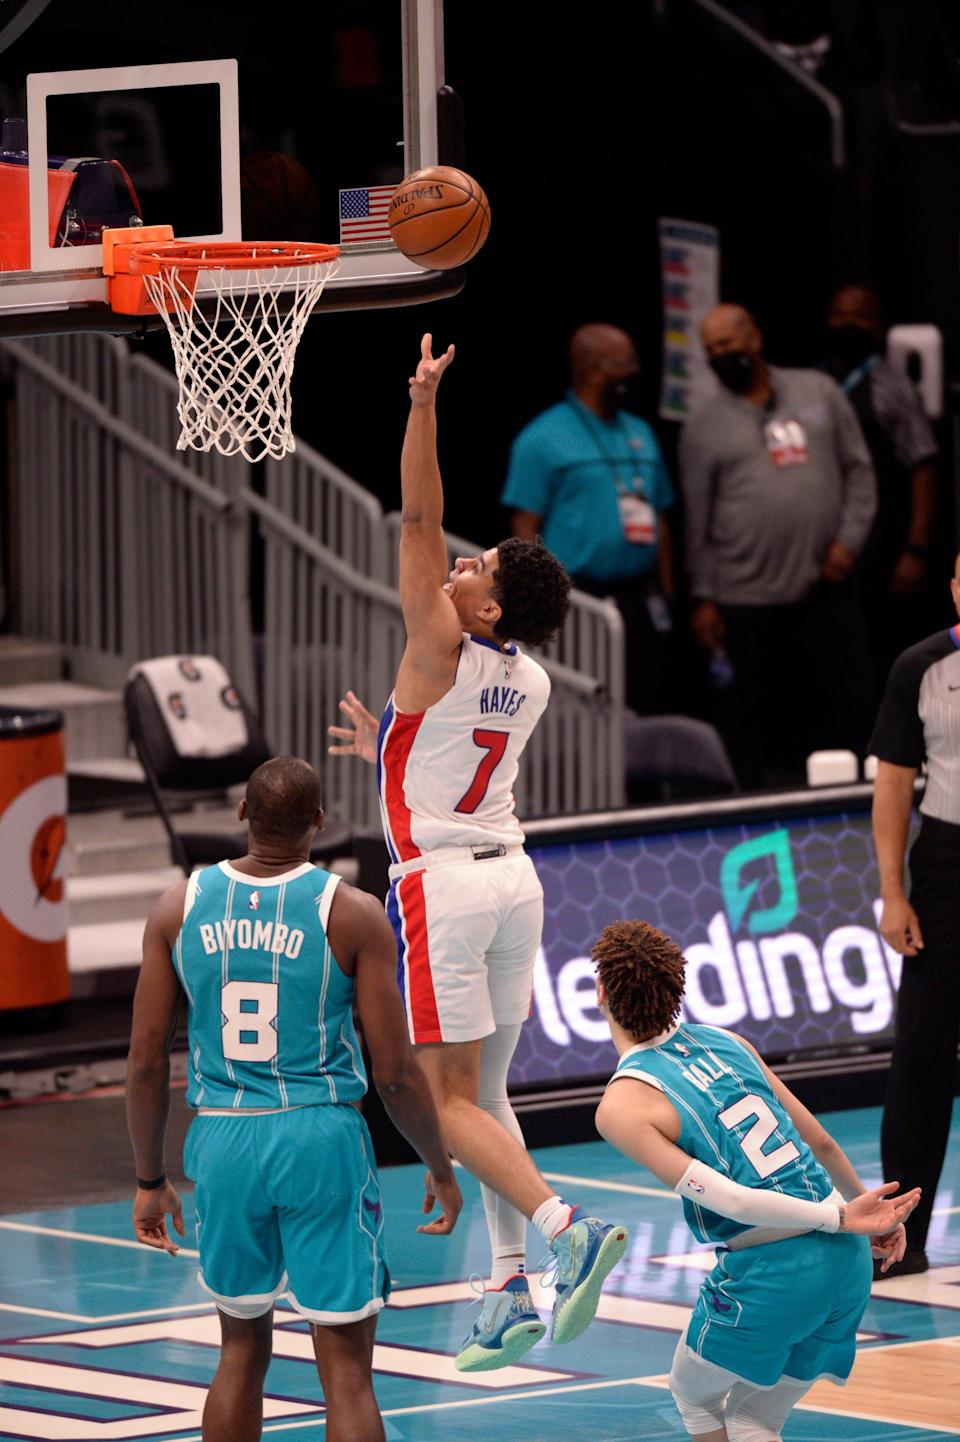 Detroit Pistons guard Killian Hayes drives to the basket during the second half against the Charlotte Hornets at the Spectrum Center, May 1, 2021 in Charlotte.